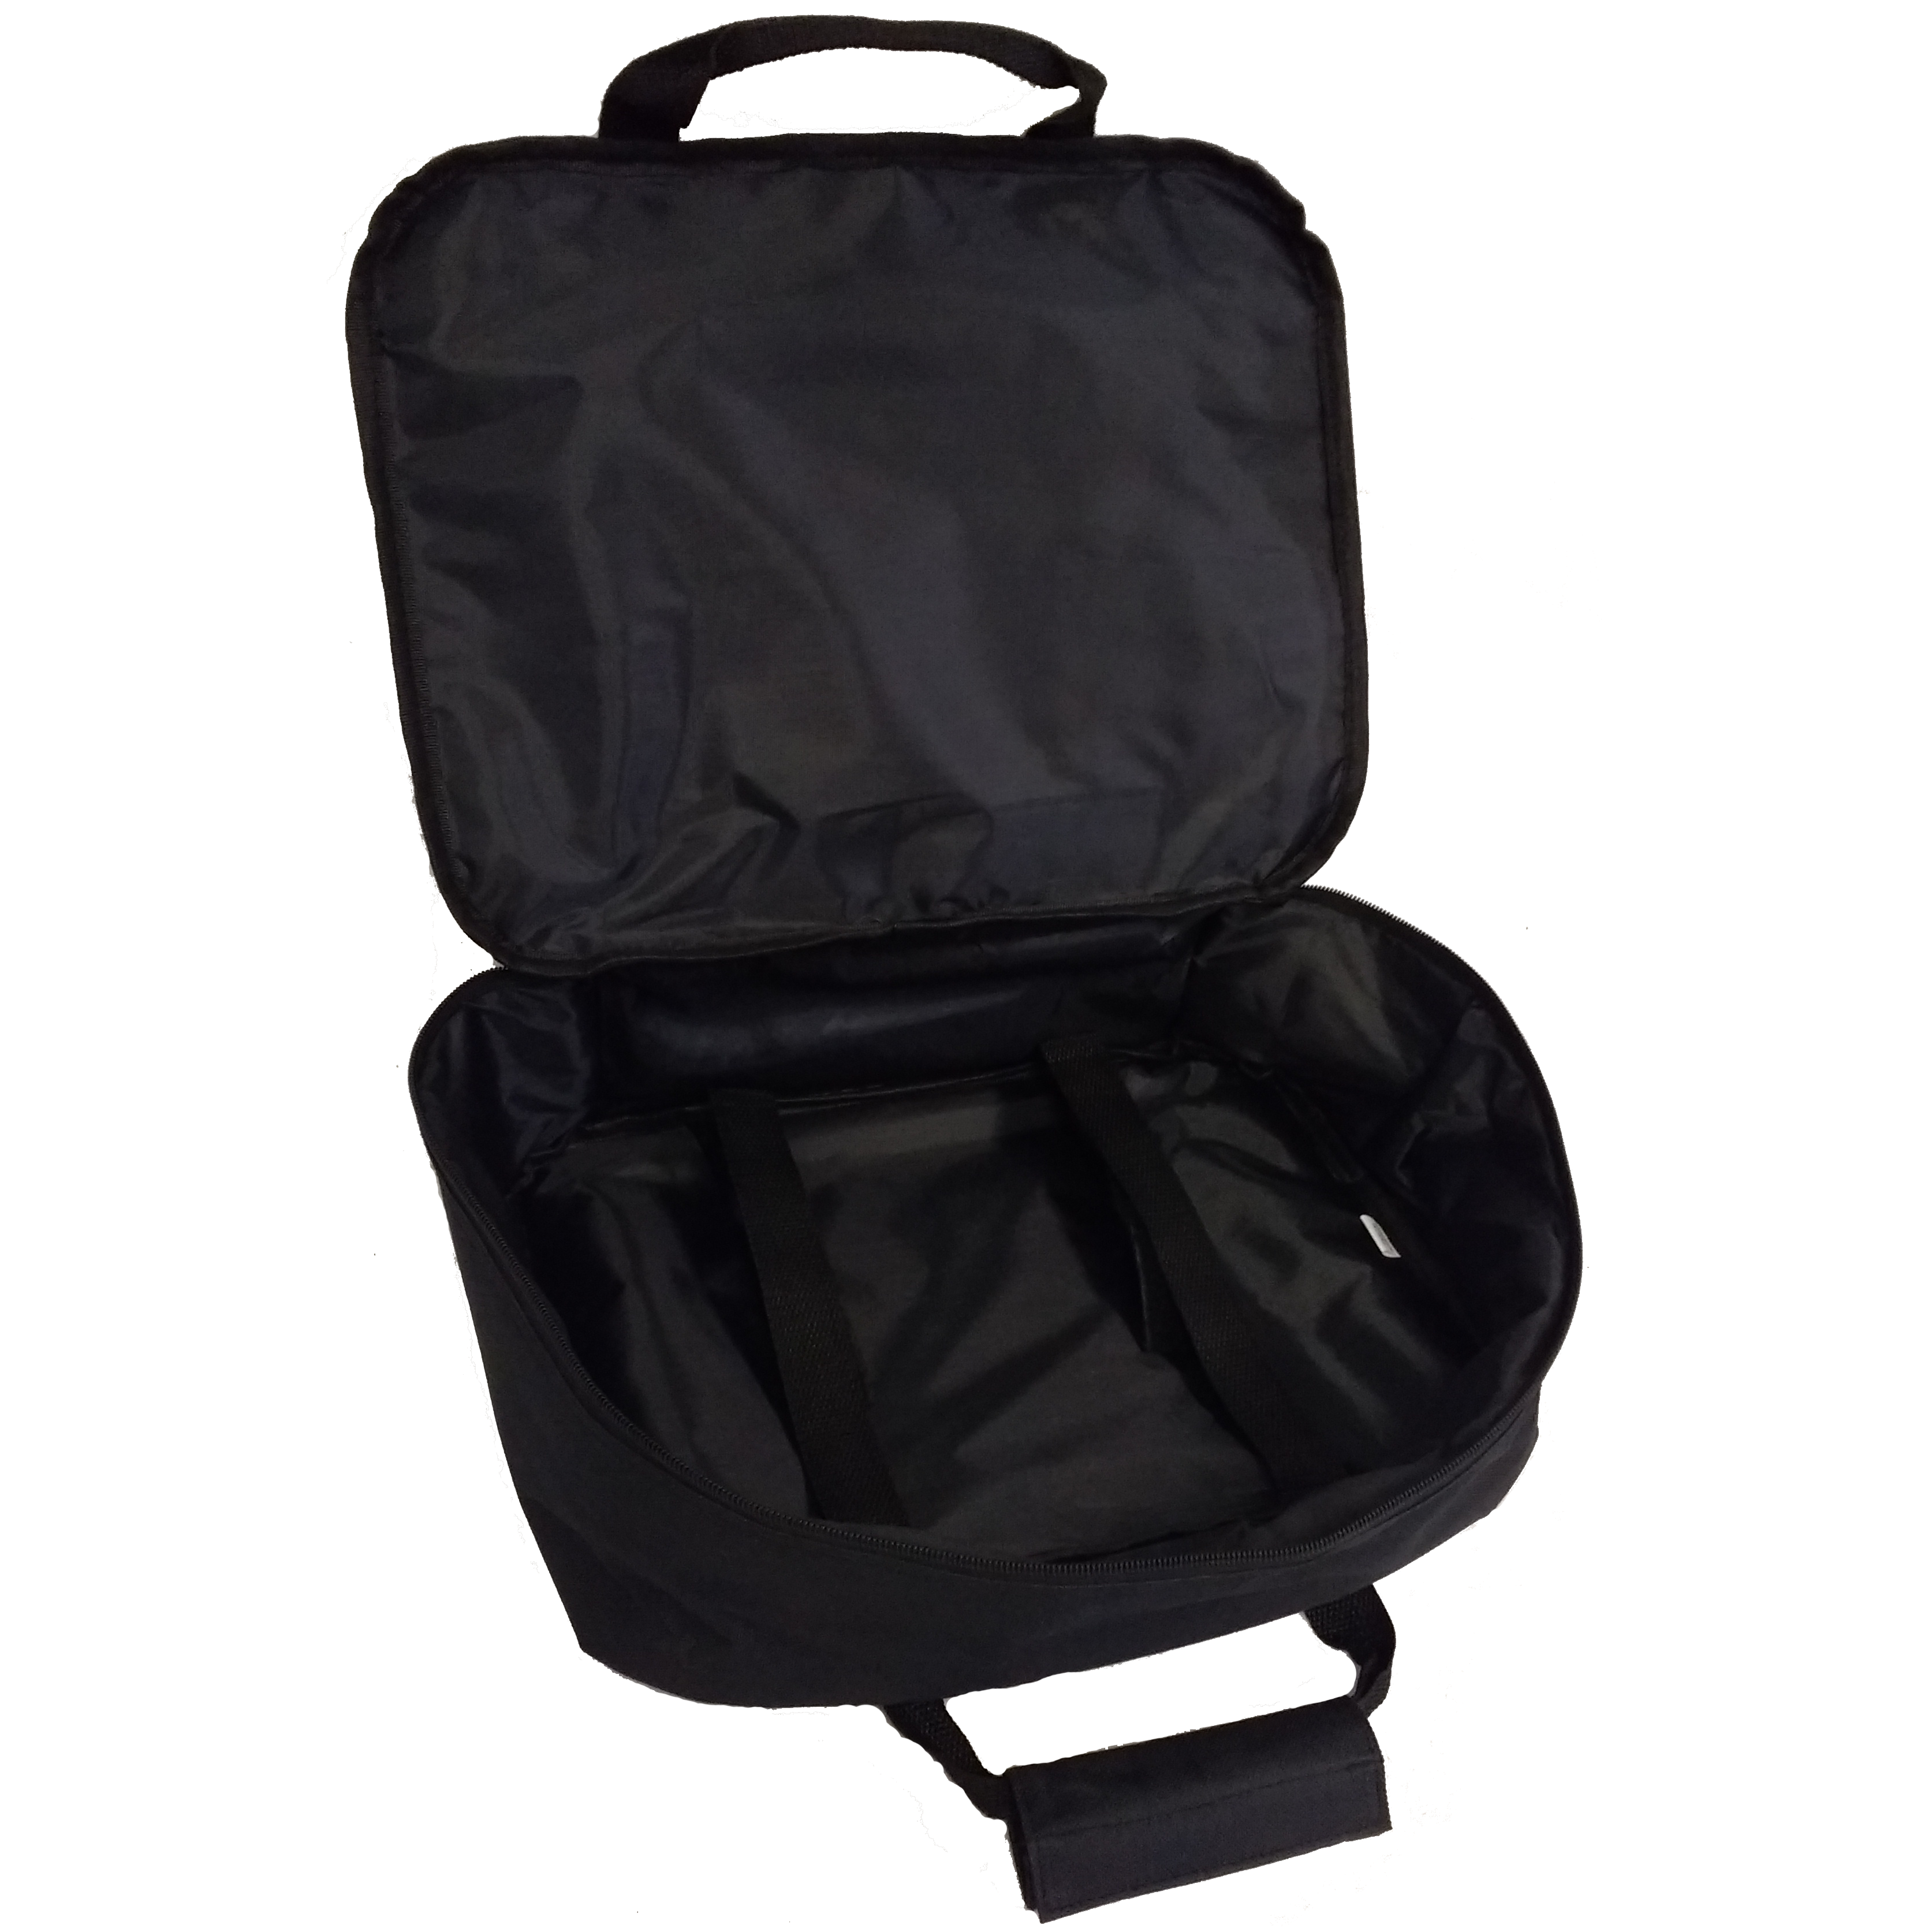 (EN-1810) Daktronics Soft Carrying Case for All Sport 1600 Controllers 1